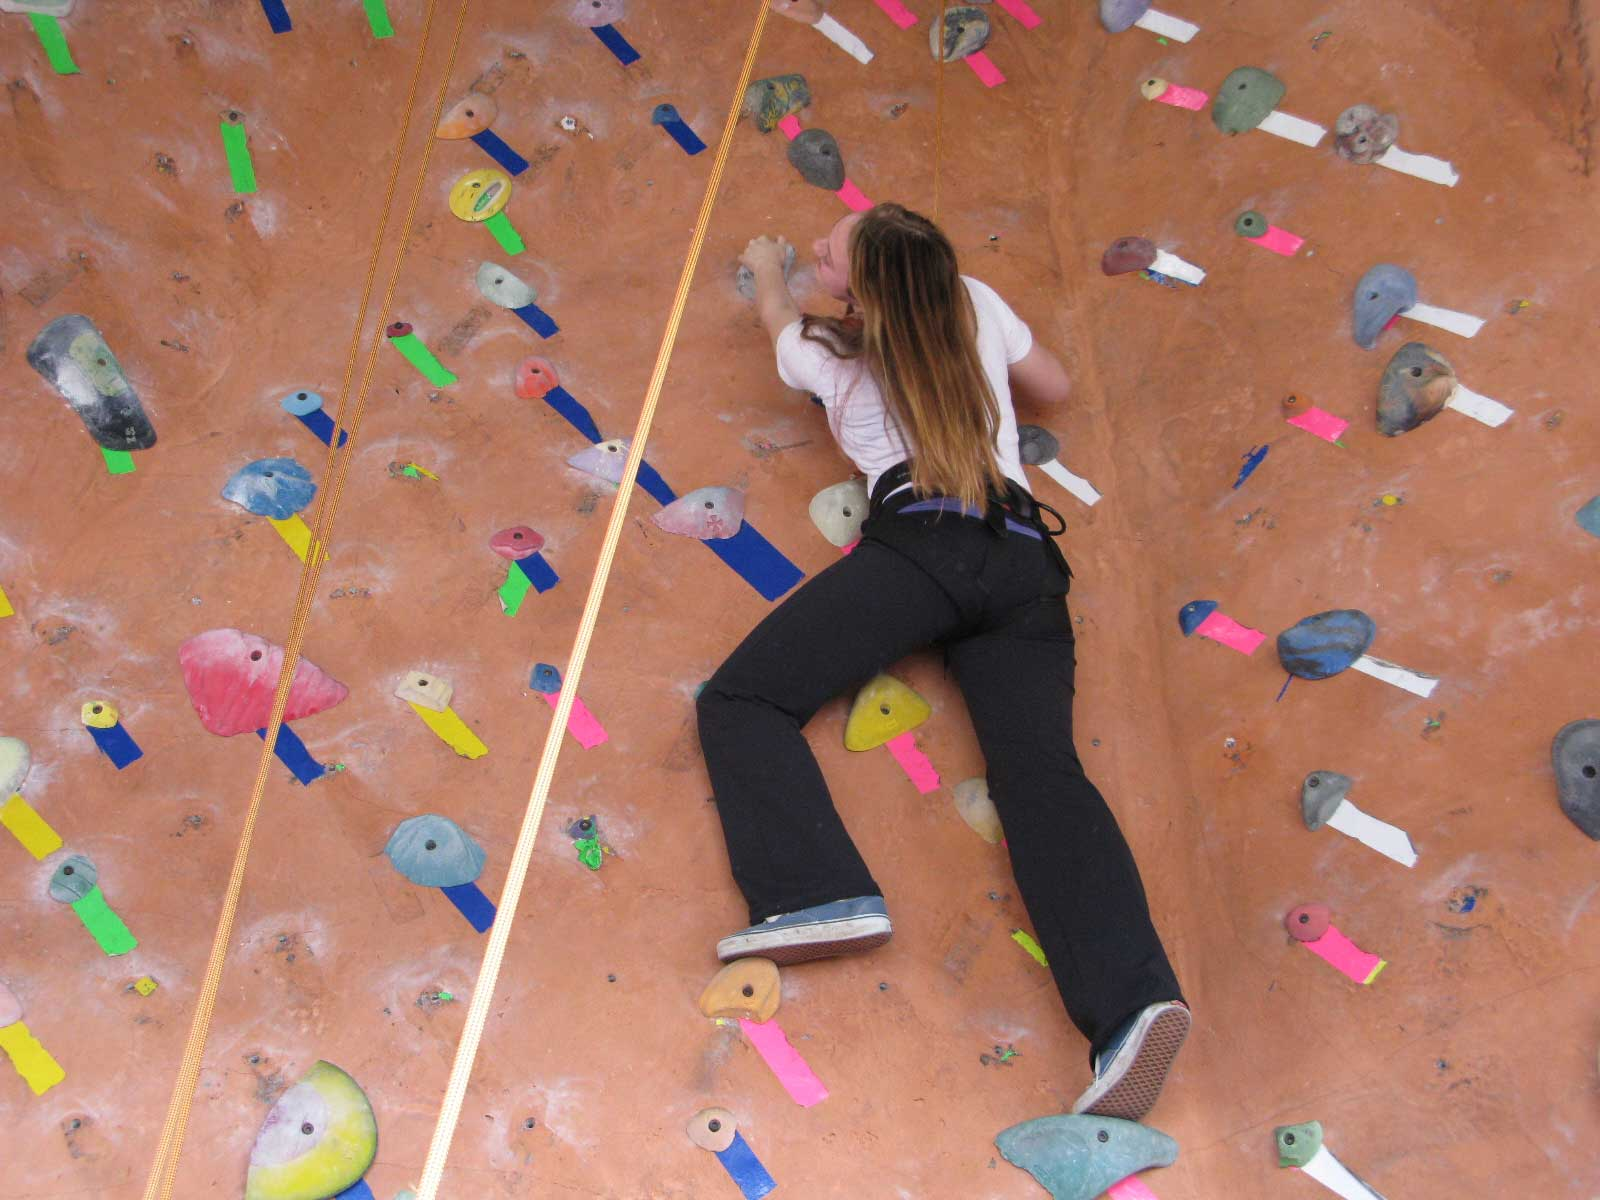 Indoor Rock Climbing Strengthens Body The Broadview